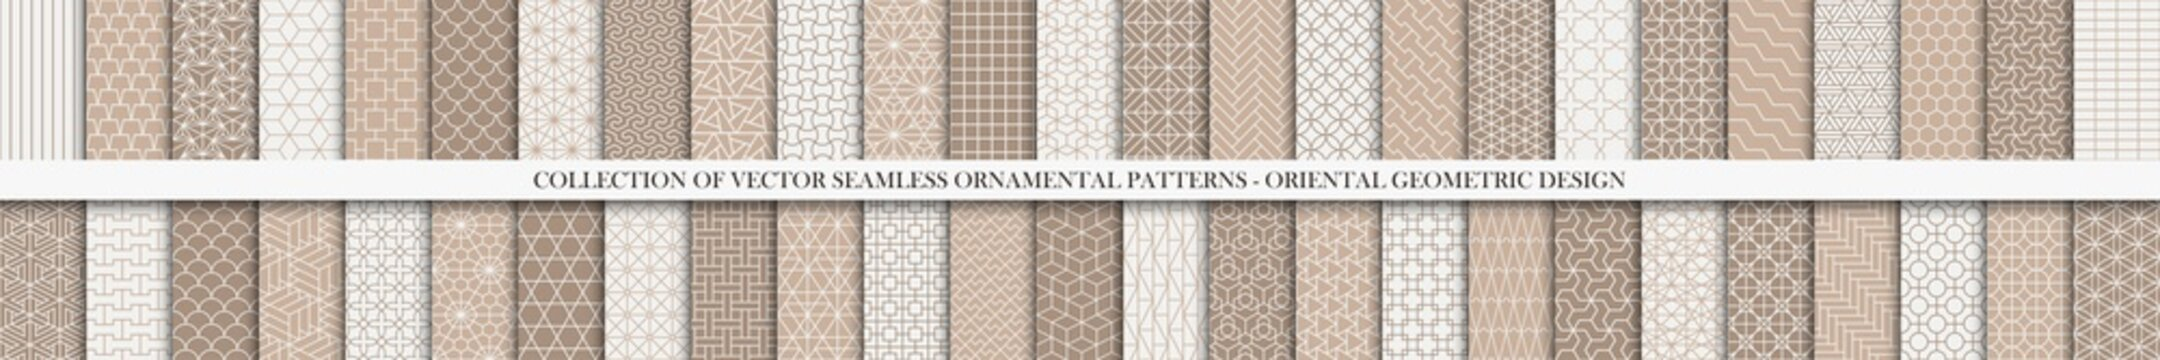 Collection of seamless ornamental vector patterns. Trendy white and brown oriental backgrounds. Creative tile mosaic design